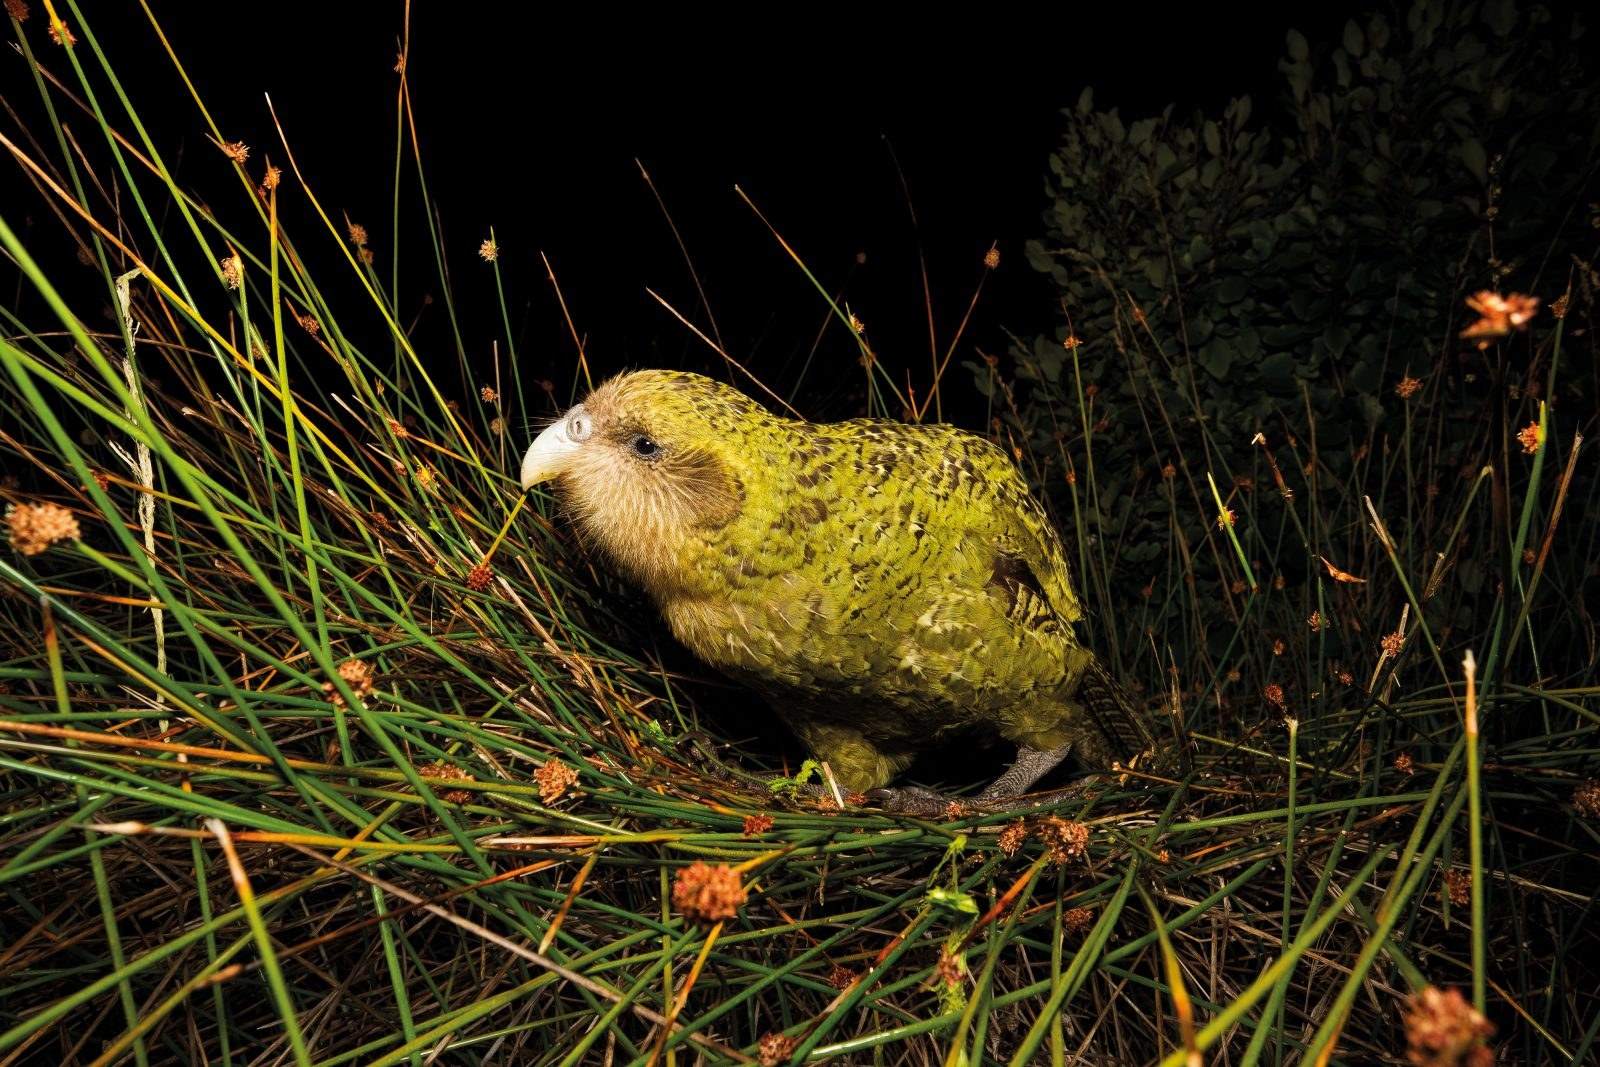 Rooster, a young male kākāpō, died suddenly at the age of four. A postmortem showed that a fungal infection had spread throughout his body, and it was suspected that there was a genetic basis to his illness, as several young kākāpō to have recently died young had been fathered by the same male, Basil. When the kākāpō genome is complete, researchers will investigate the MHC allele, which is connected to immune response to pathogens.